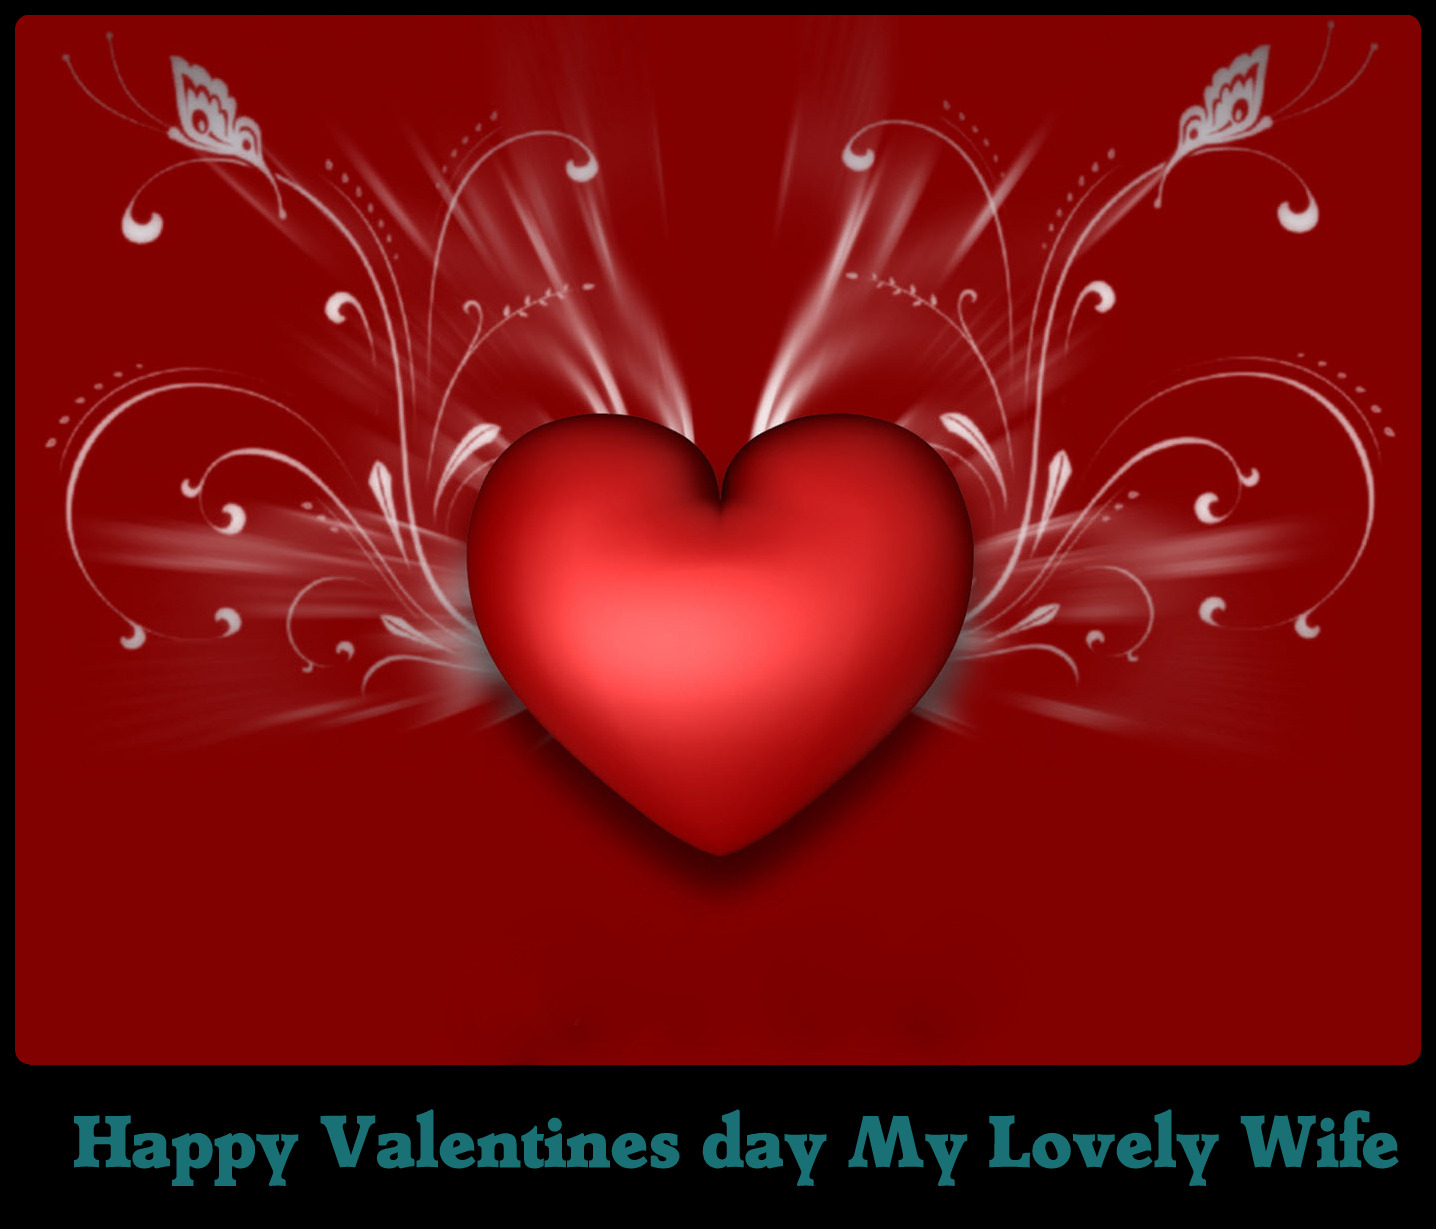 Romantic Messages to Write on Valentines Day Card to Wife – Messages to Write in Valentines Cards